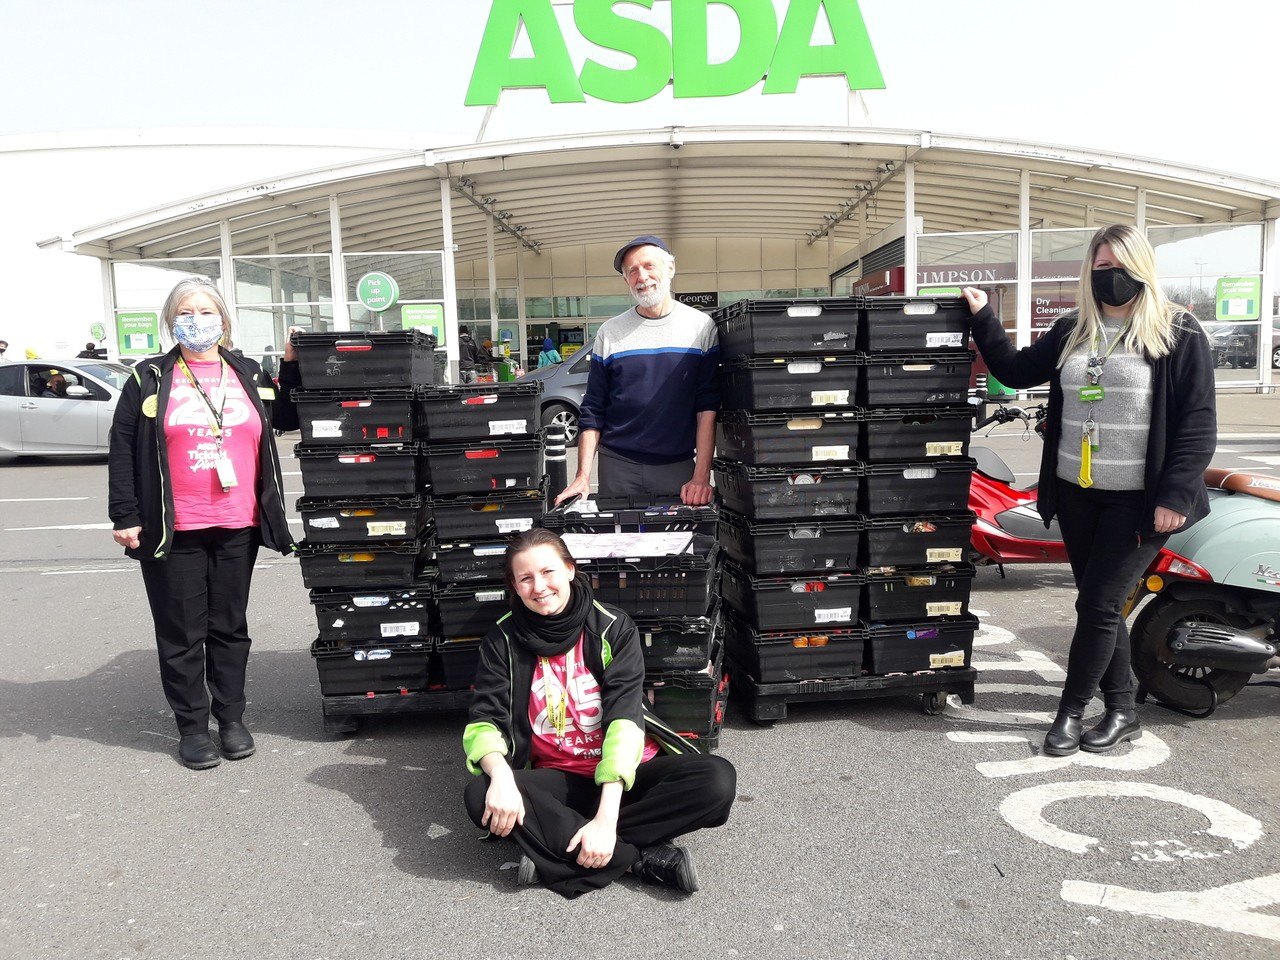 Supporting our community | Asda Leyton Mills